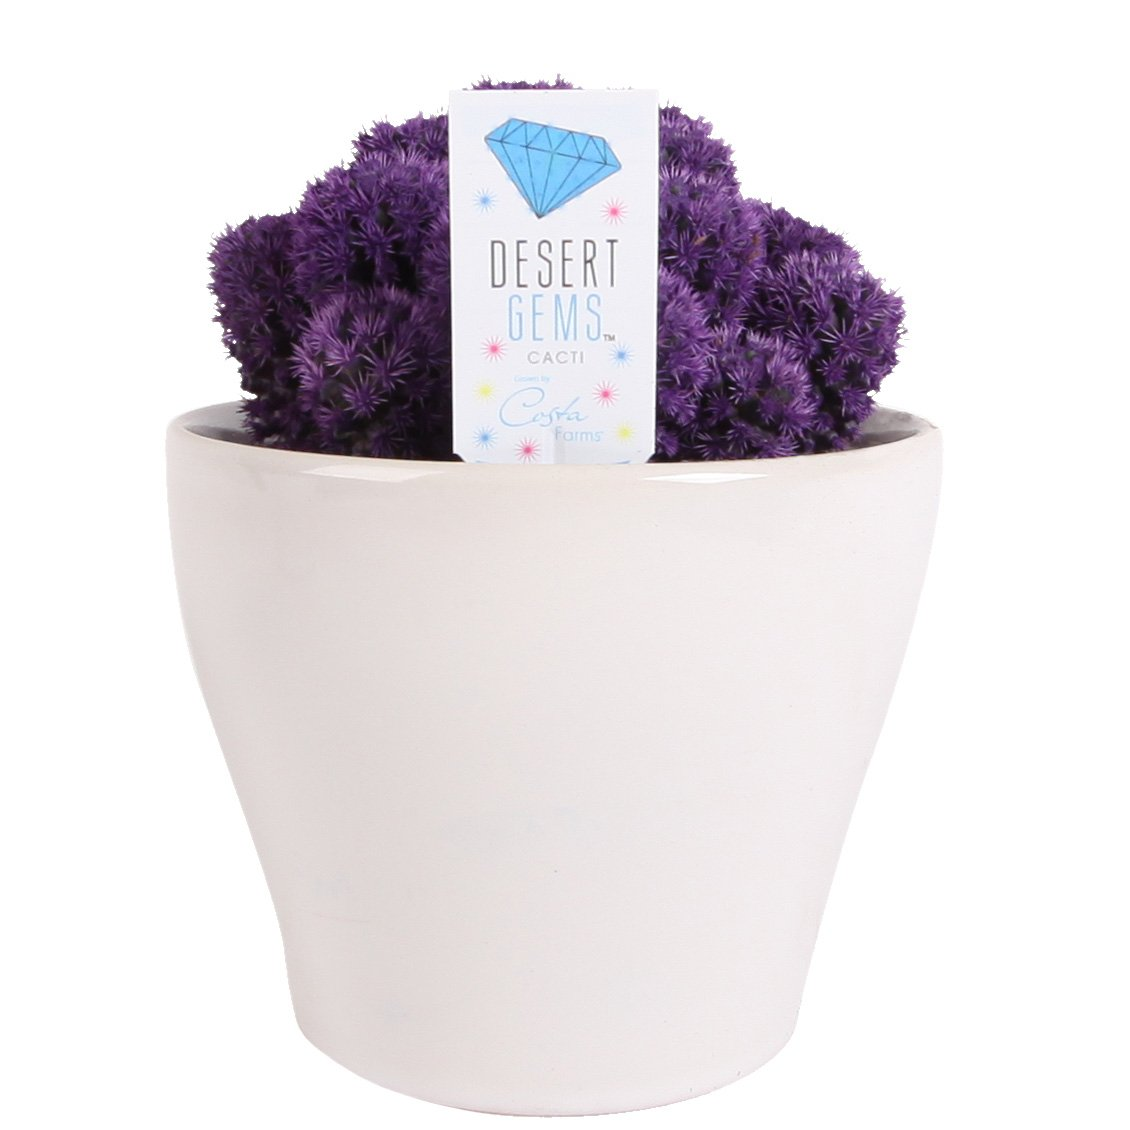 Costa Farms, Premium Live IndoorDesert Gems Purple Cacti, Tabletop Plant, White Gloss Euro Ceramic Decorator Pot,Shipped Fresh From Our Farm, Excellent Gift